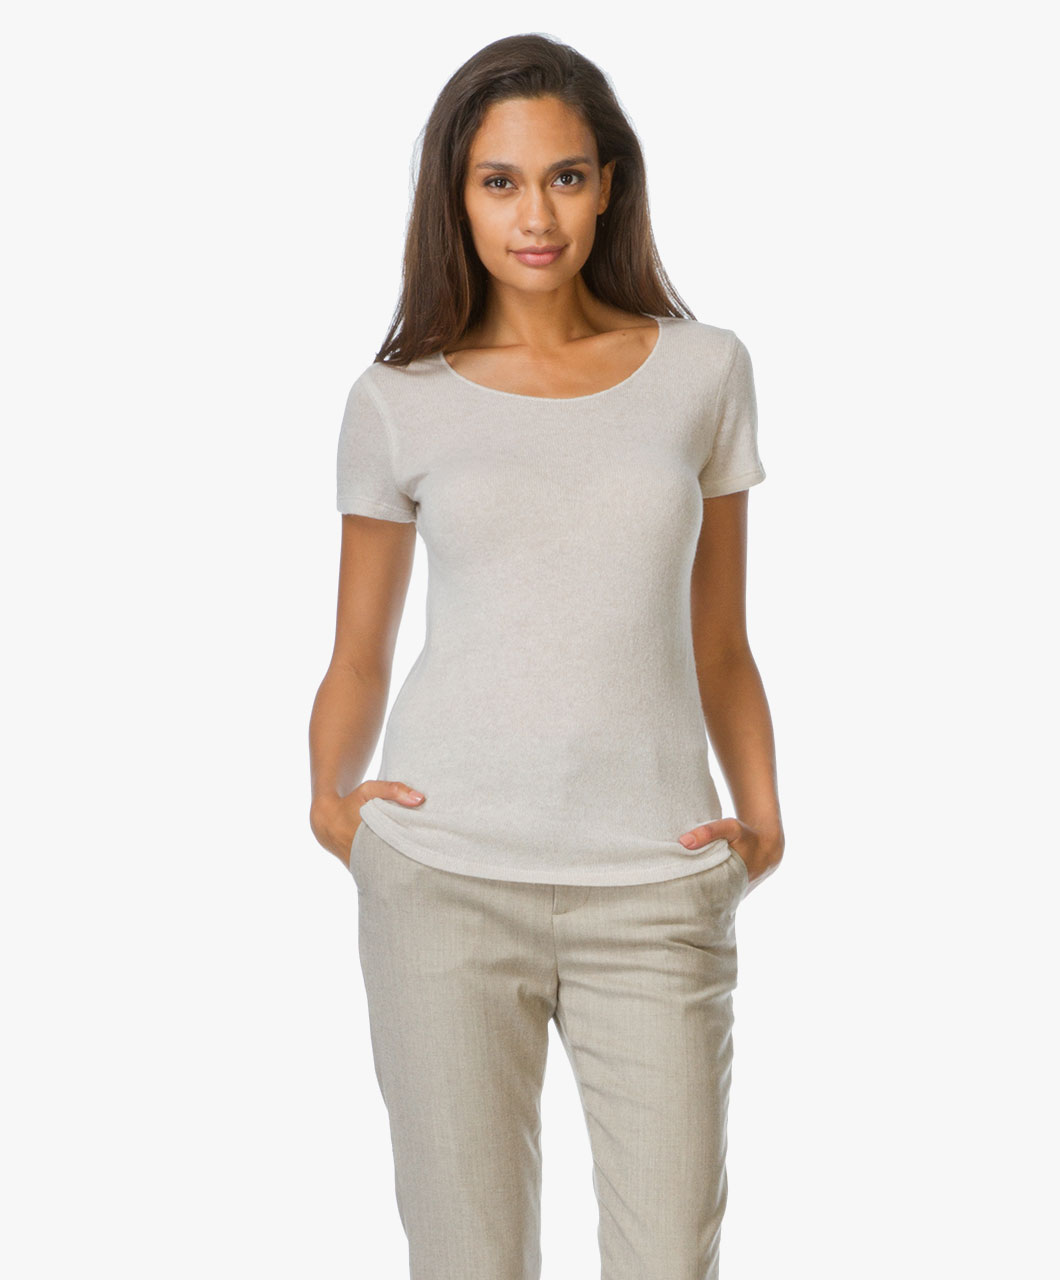 Shop The Look Business Casual Pagina 9 Perfectly Basics